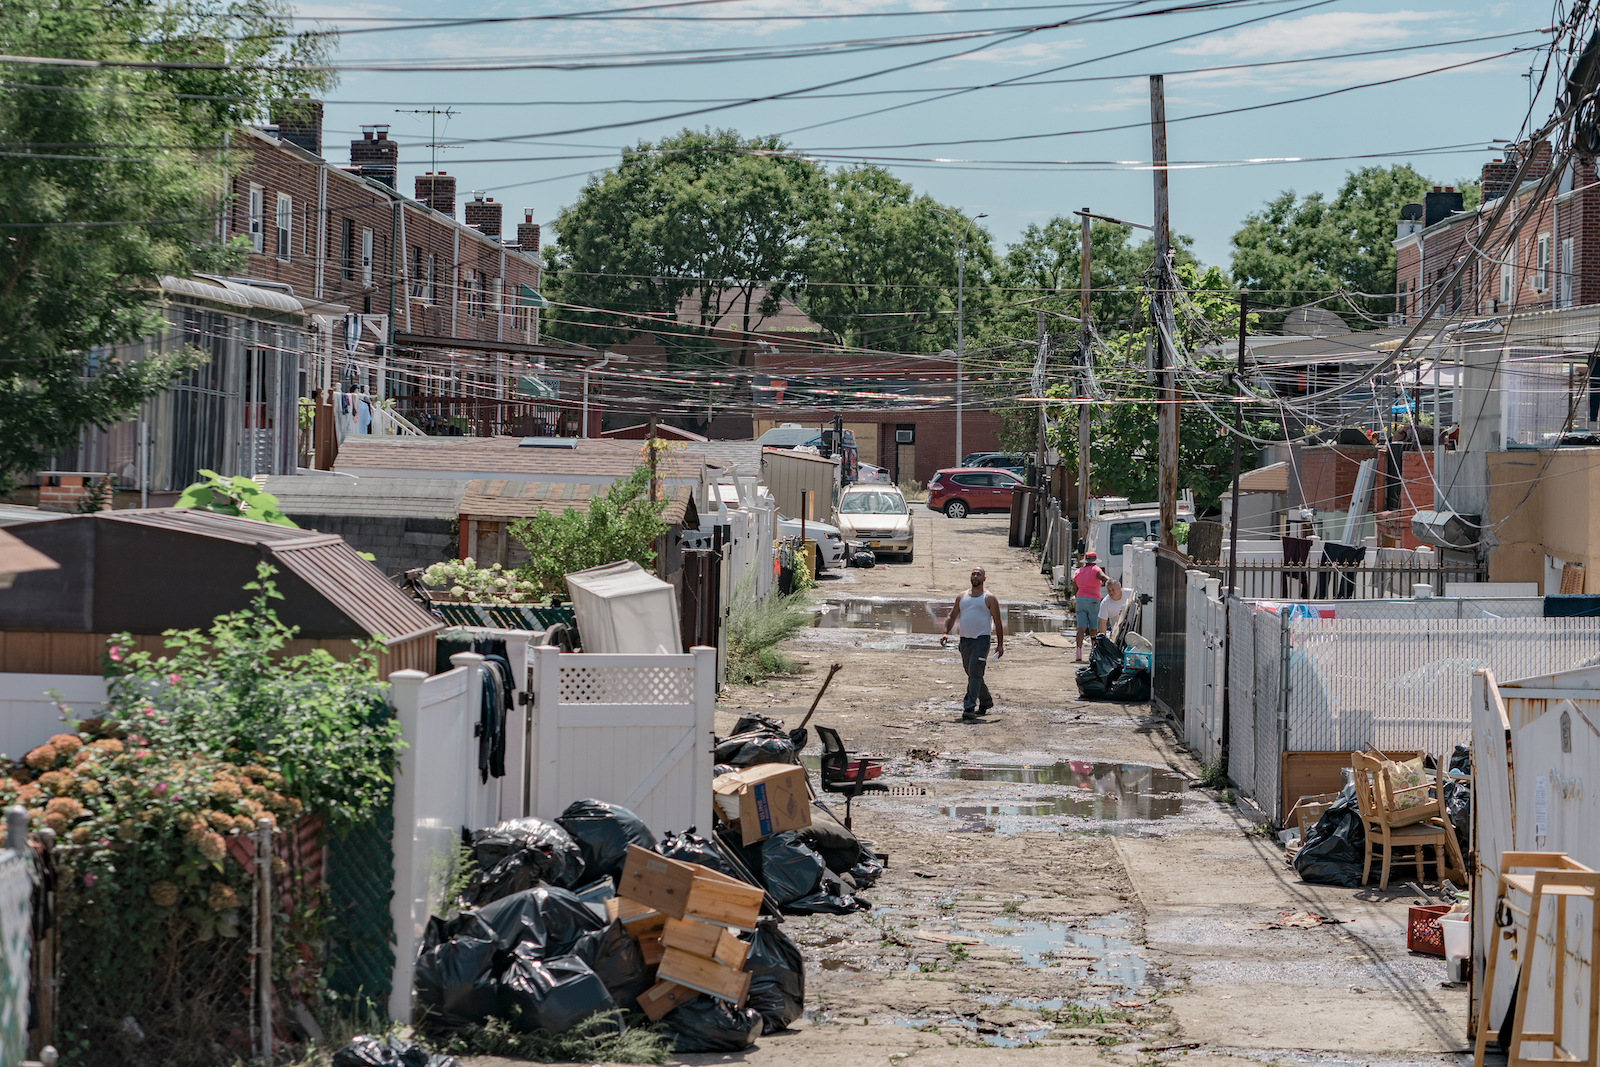 A street in New York looks wet, garbage and debris acoomultes in the sidewalk. A man wearing a white tank top and jeans walks through it.